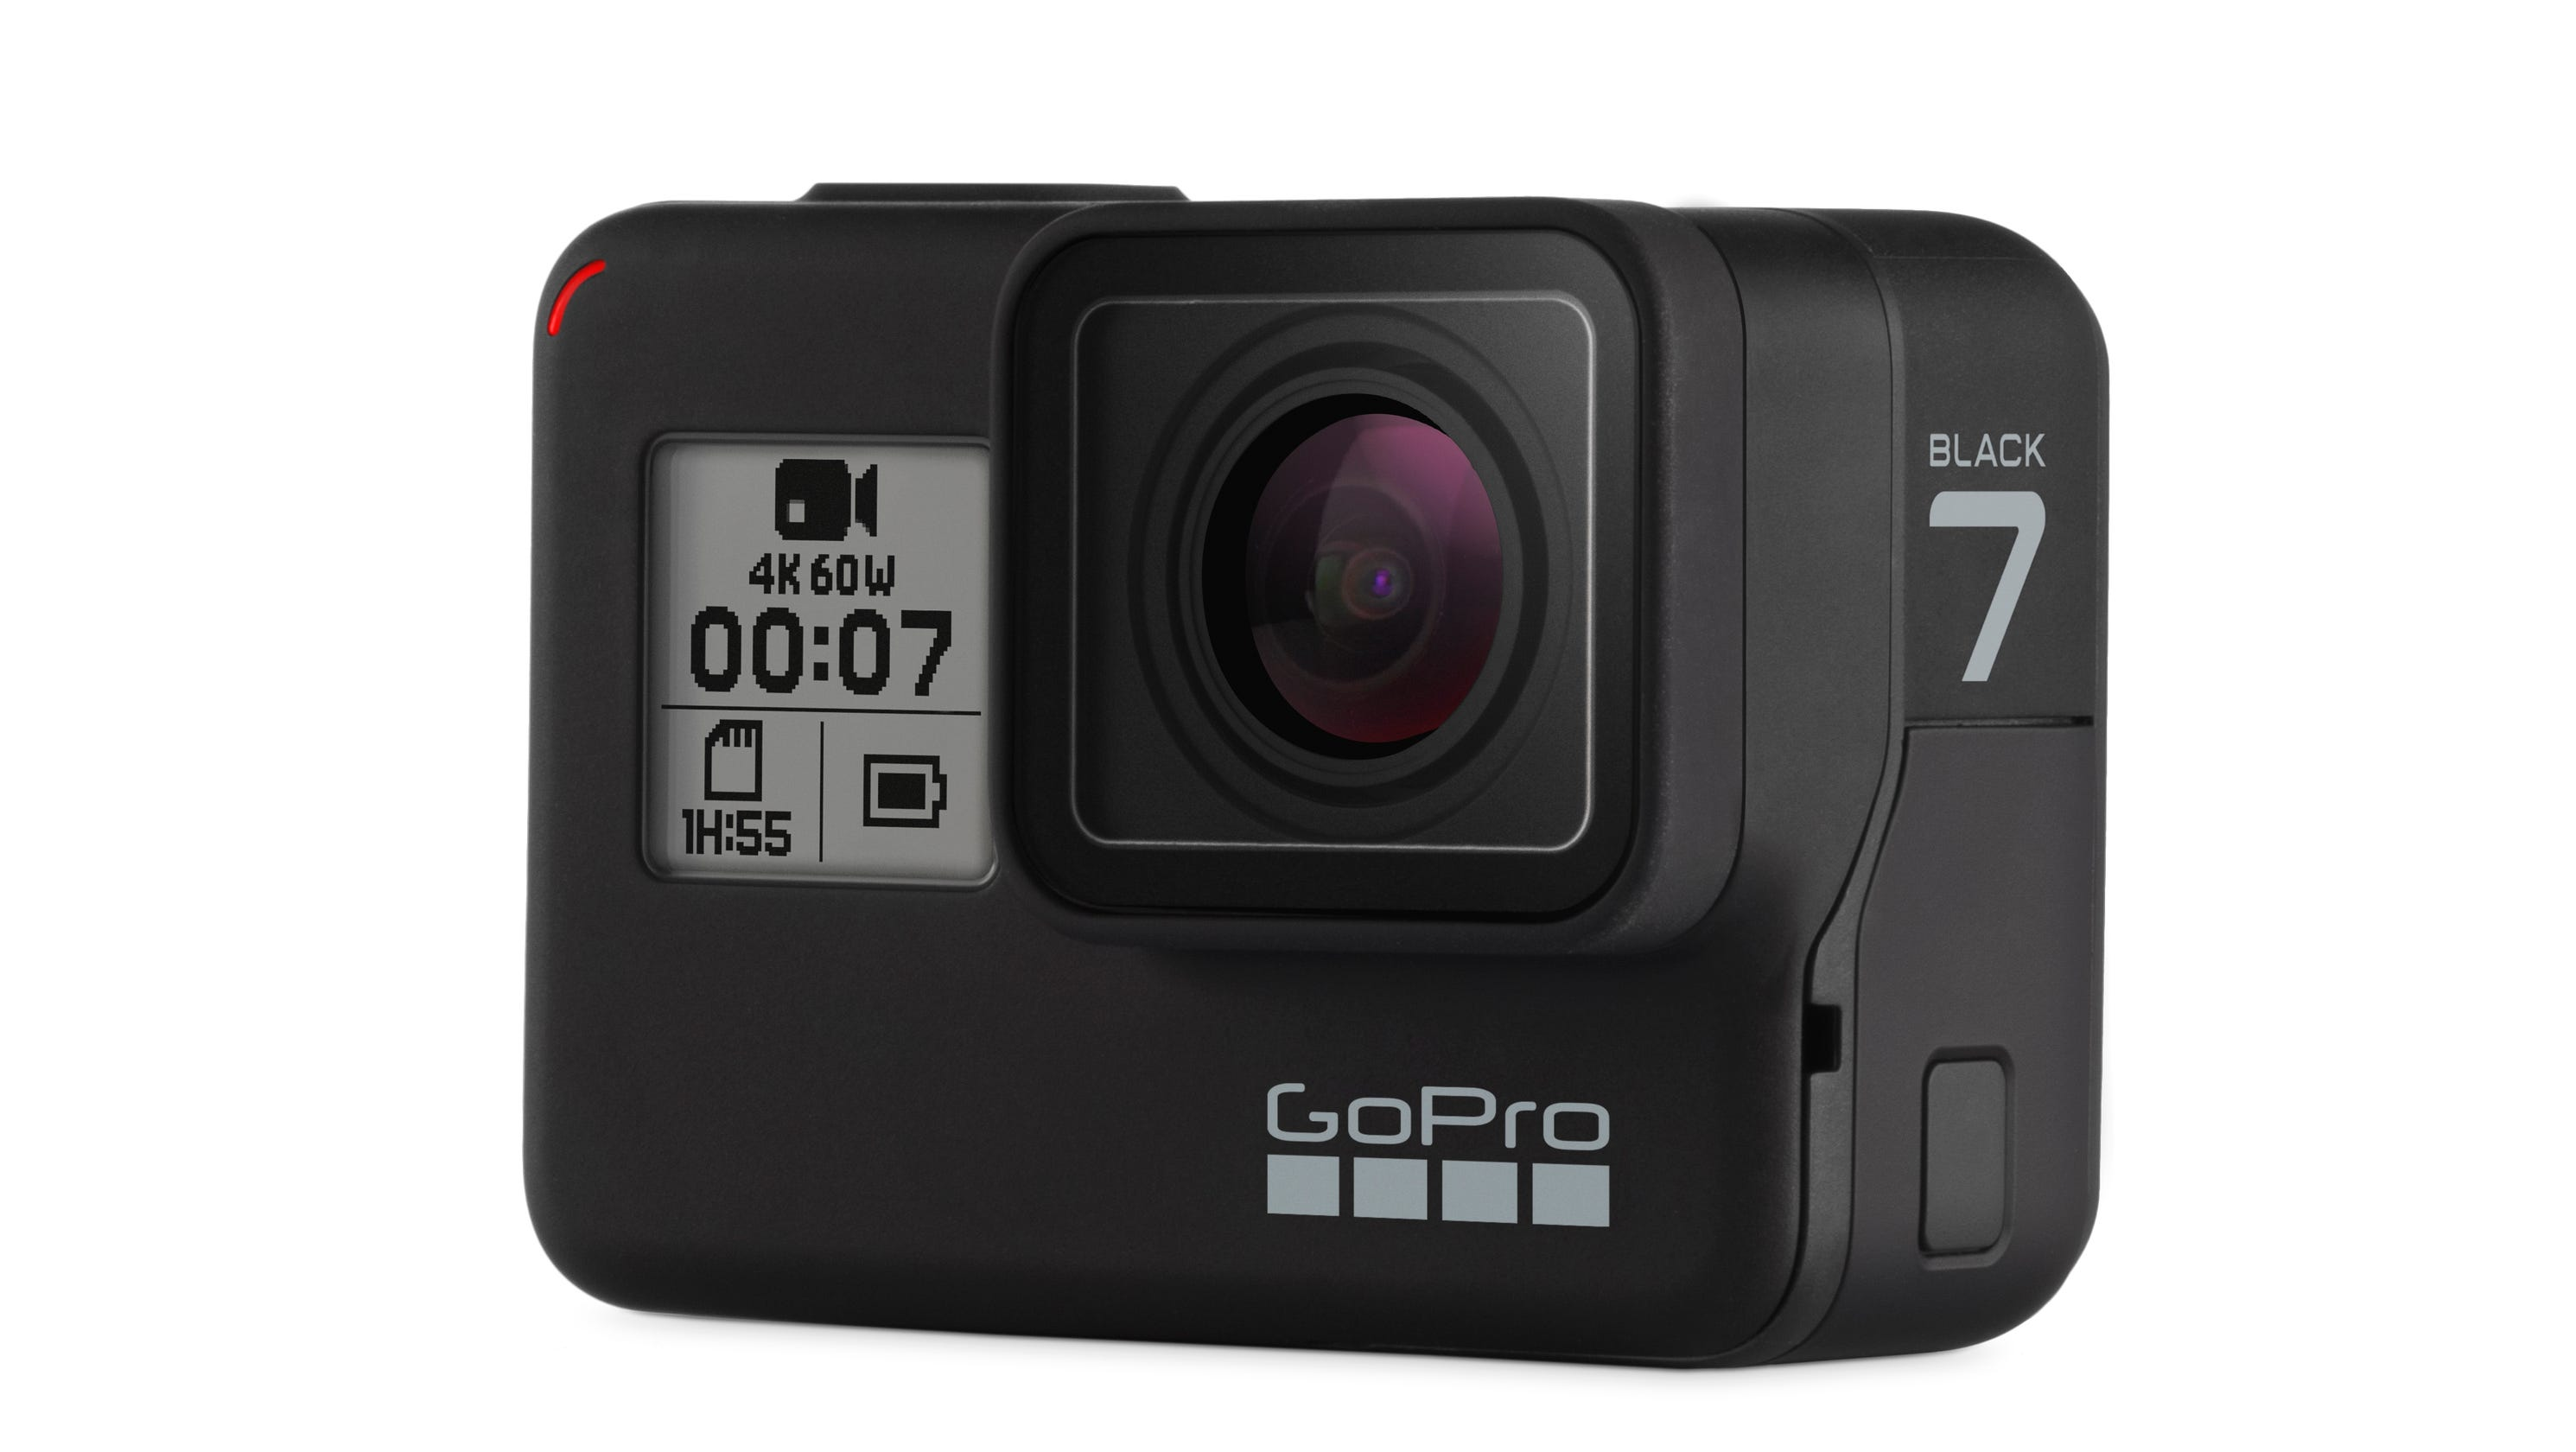 Gopro Hero 2018 Review 7 Smoother Gets Major Upgrade